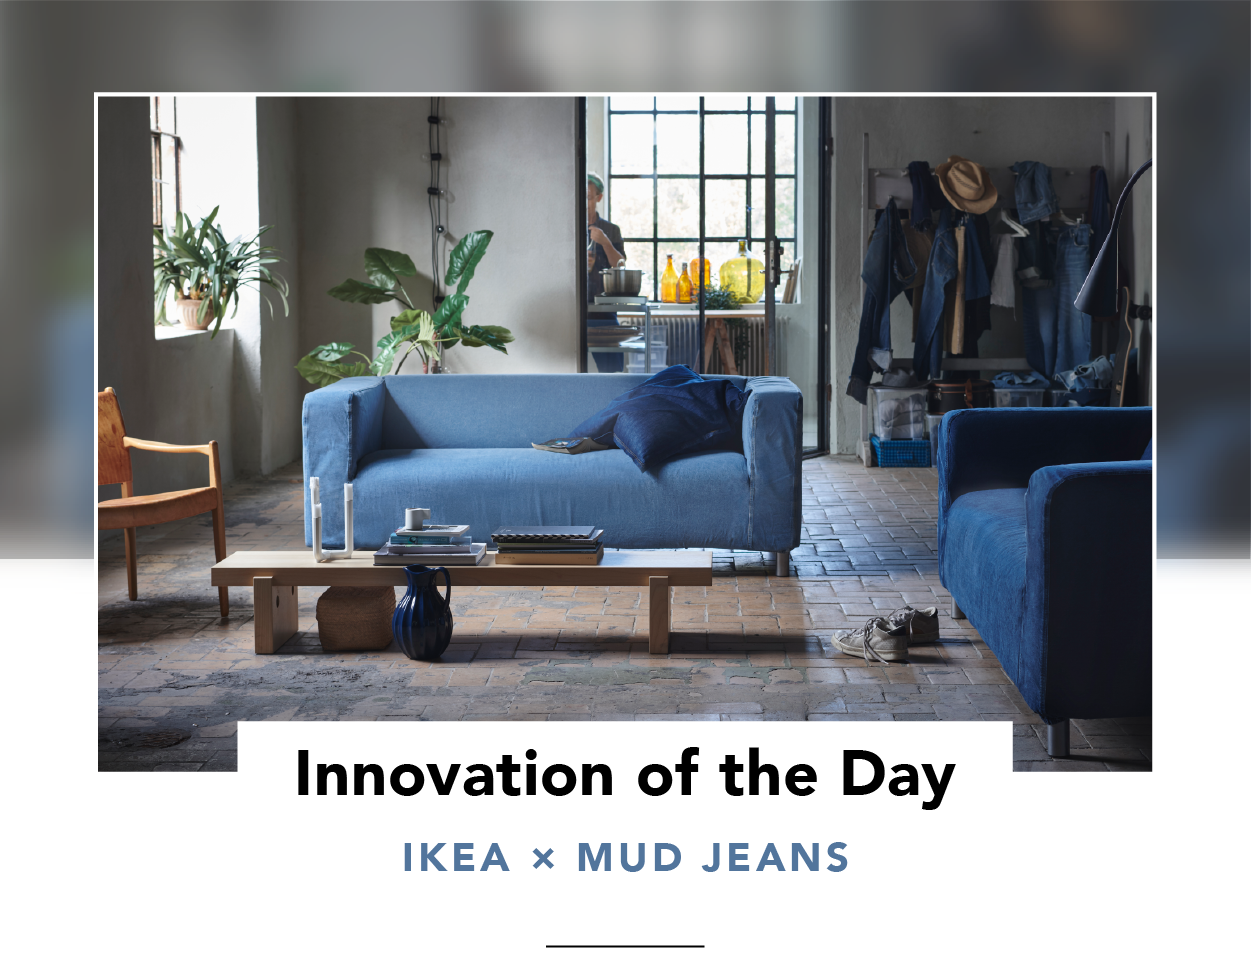 Two denim-covered KLIPPAN sofas in a living room